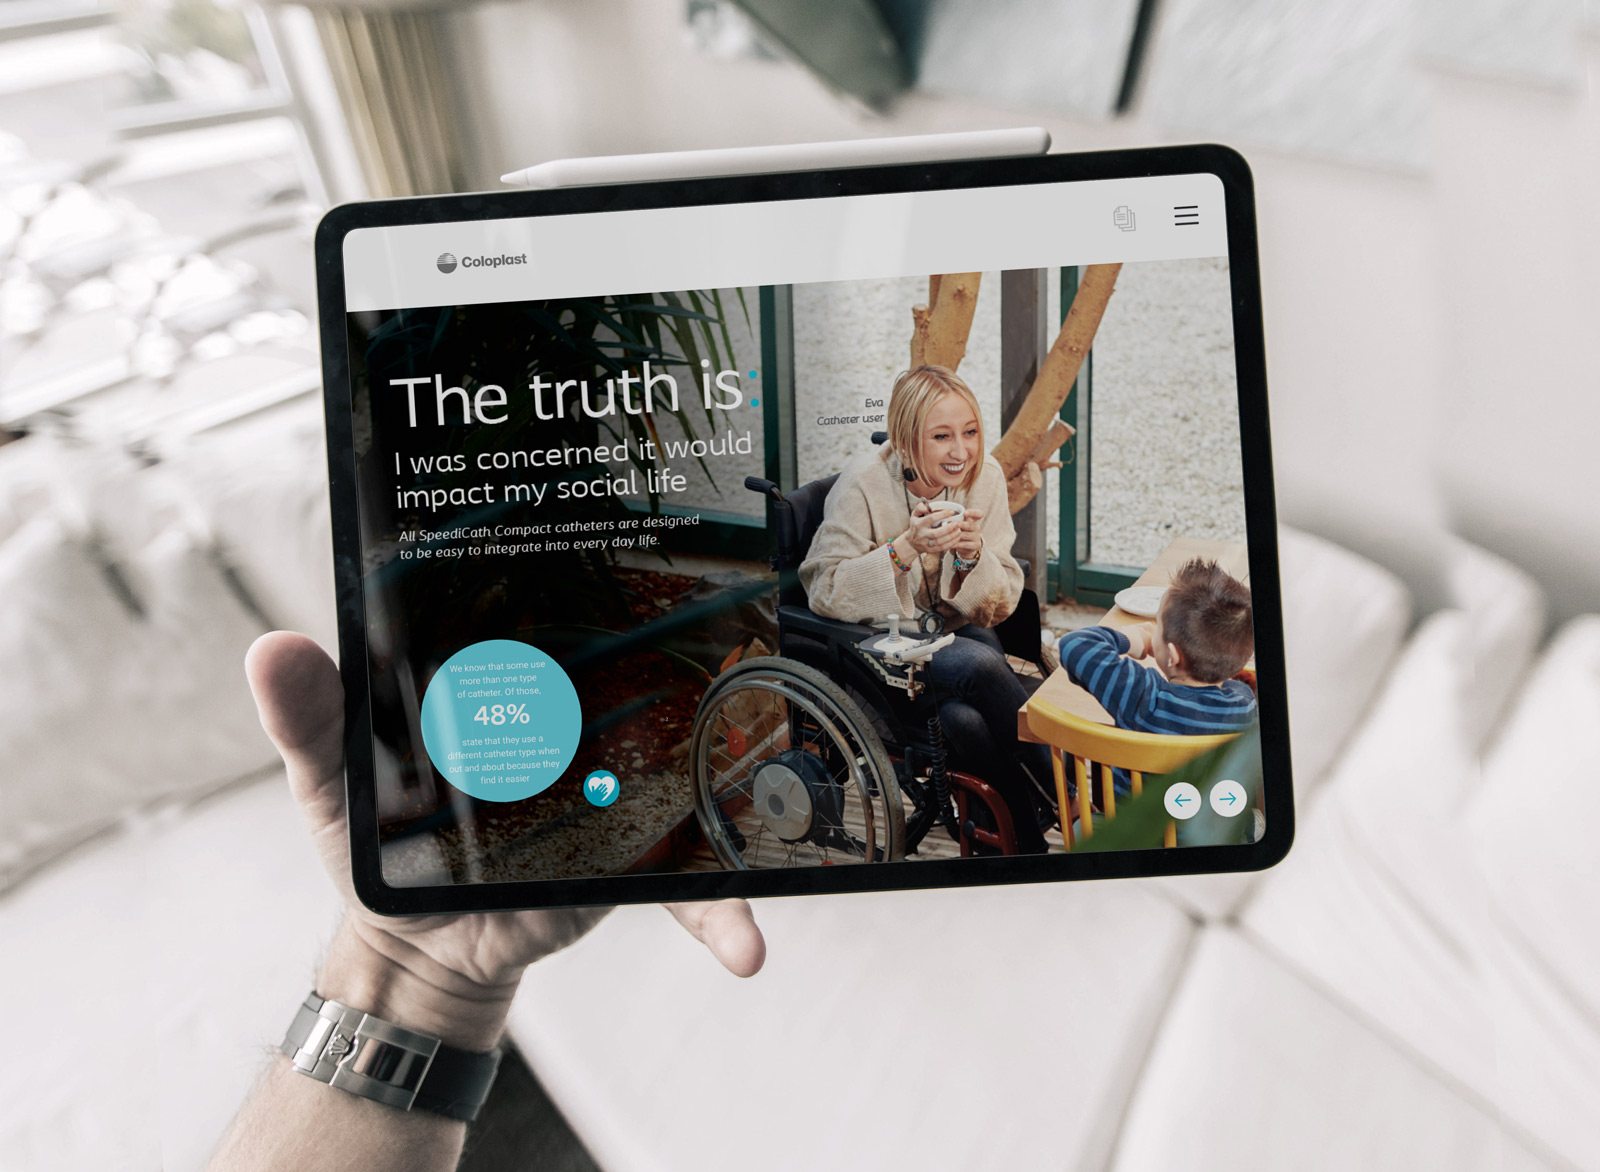 person holding black tablet displaying Coloplast interactive touchscreen digital presentation